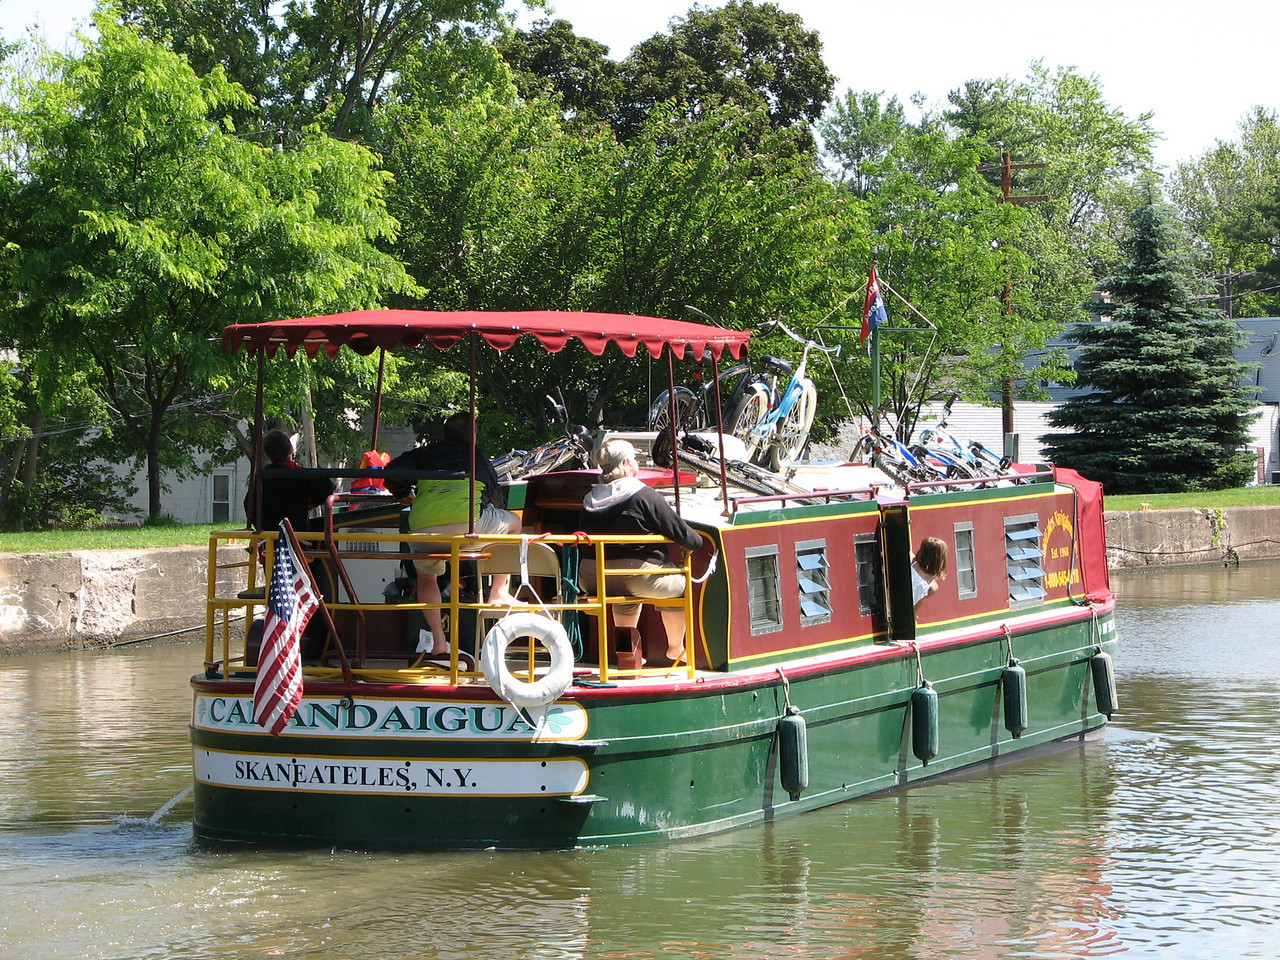 The Canandaigua was rented by a family of two grandparents, two parents, and two kids.  (See one peering out the starboard hatch.)